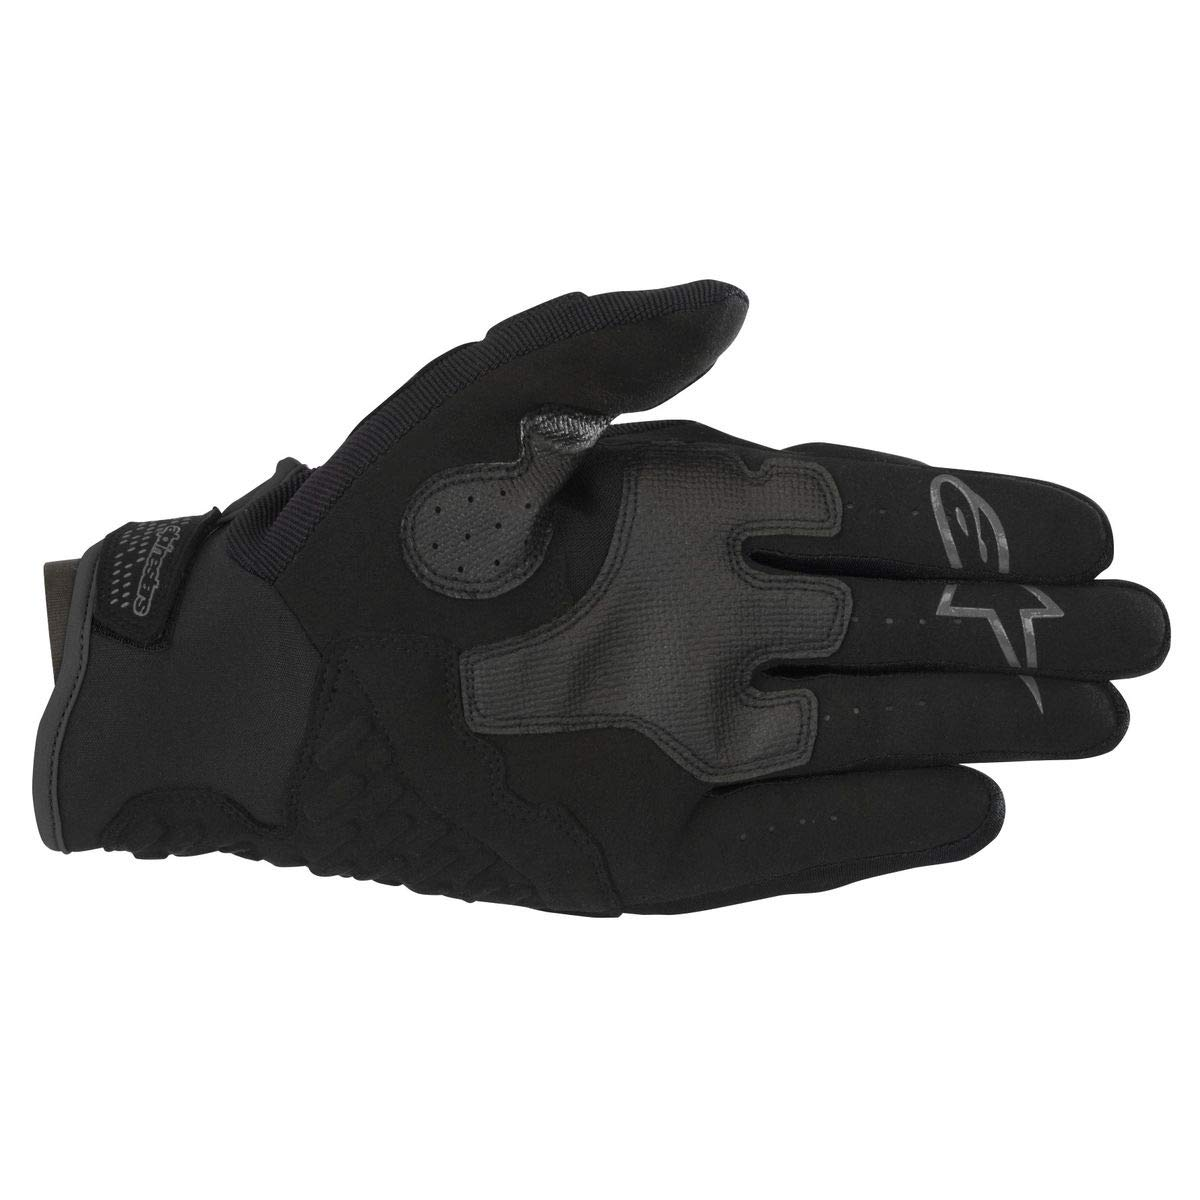 Alpinestars Unisex Adult Gloves black 2X 3330-4905